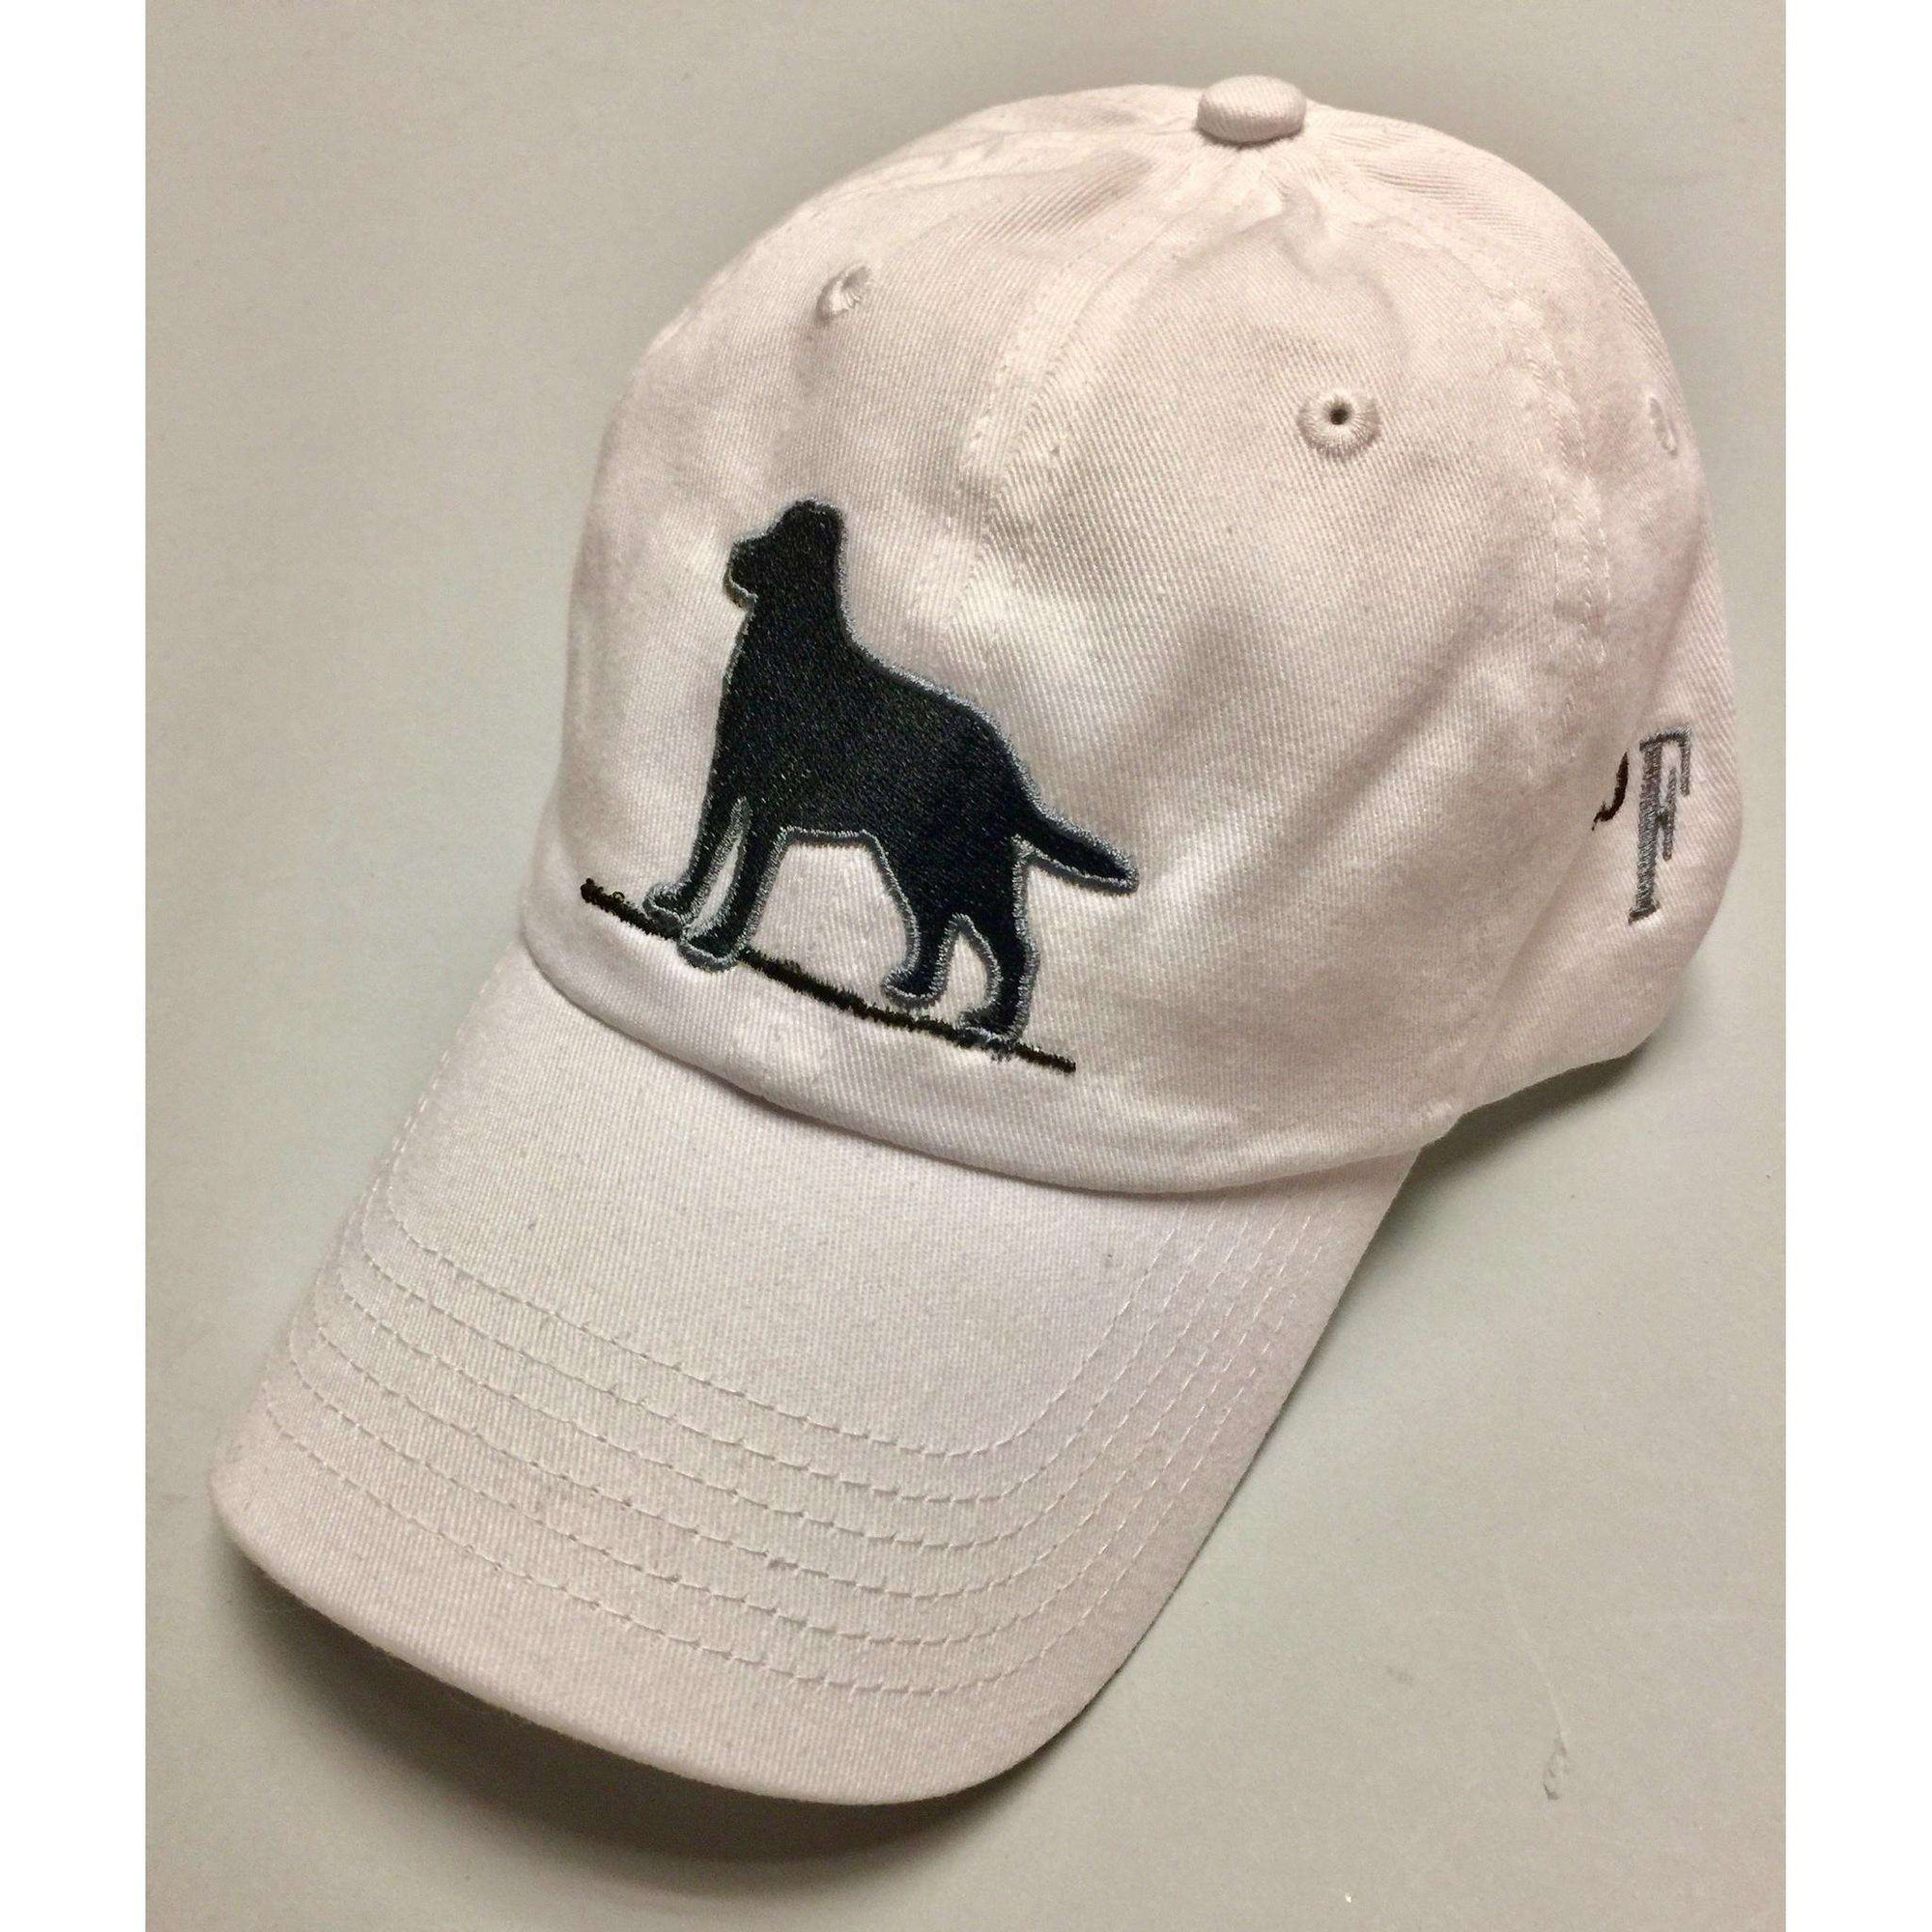 Black Labrador Retriever on a White Hat